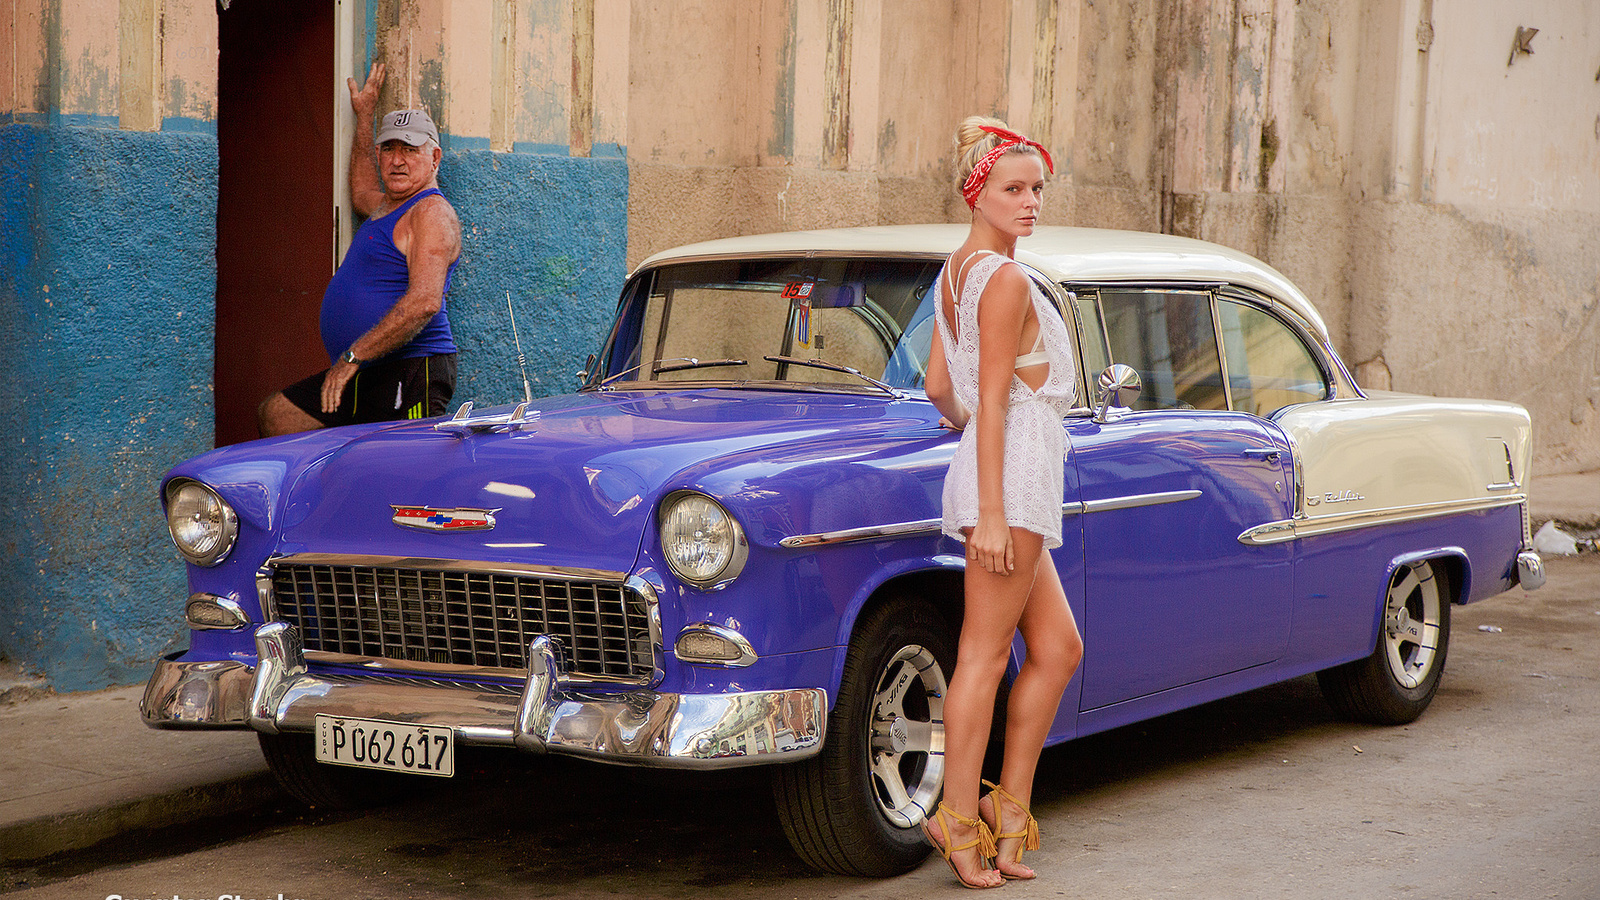 chevrolet camaro, girl, wall, house, sexy, dress, legs, photography, photo, photographer, model, man, blonde, body, cuba, old man